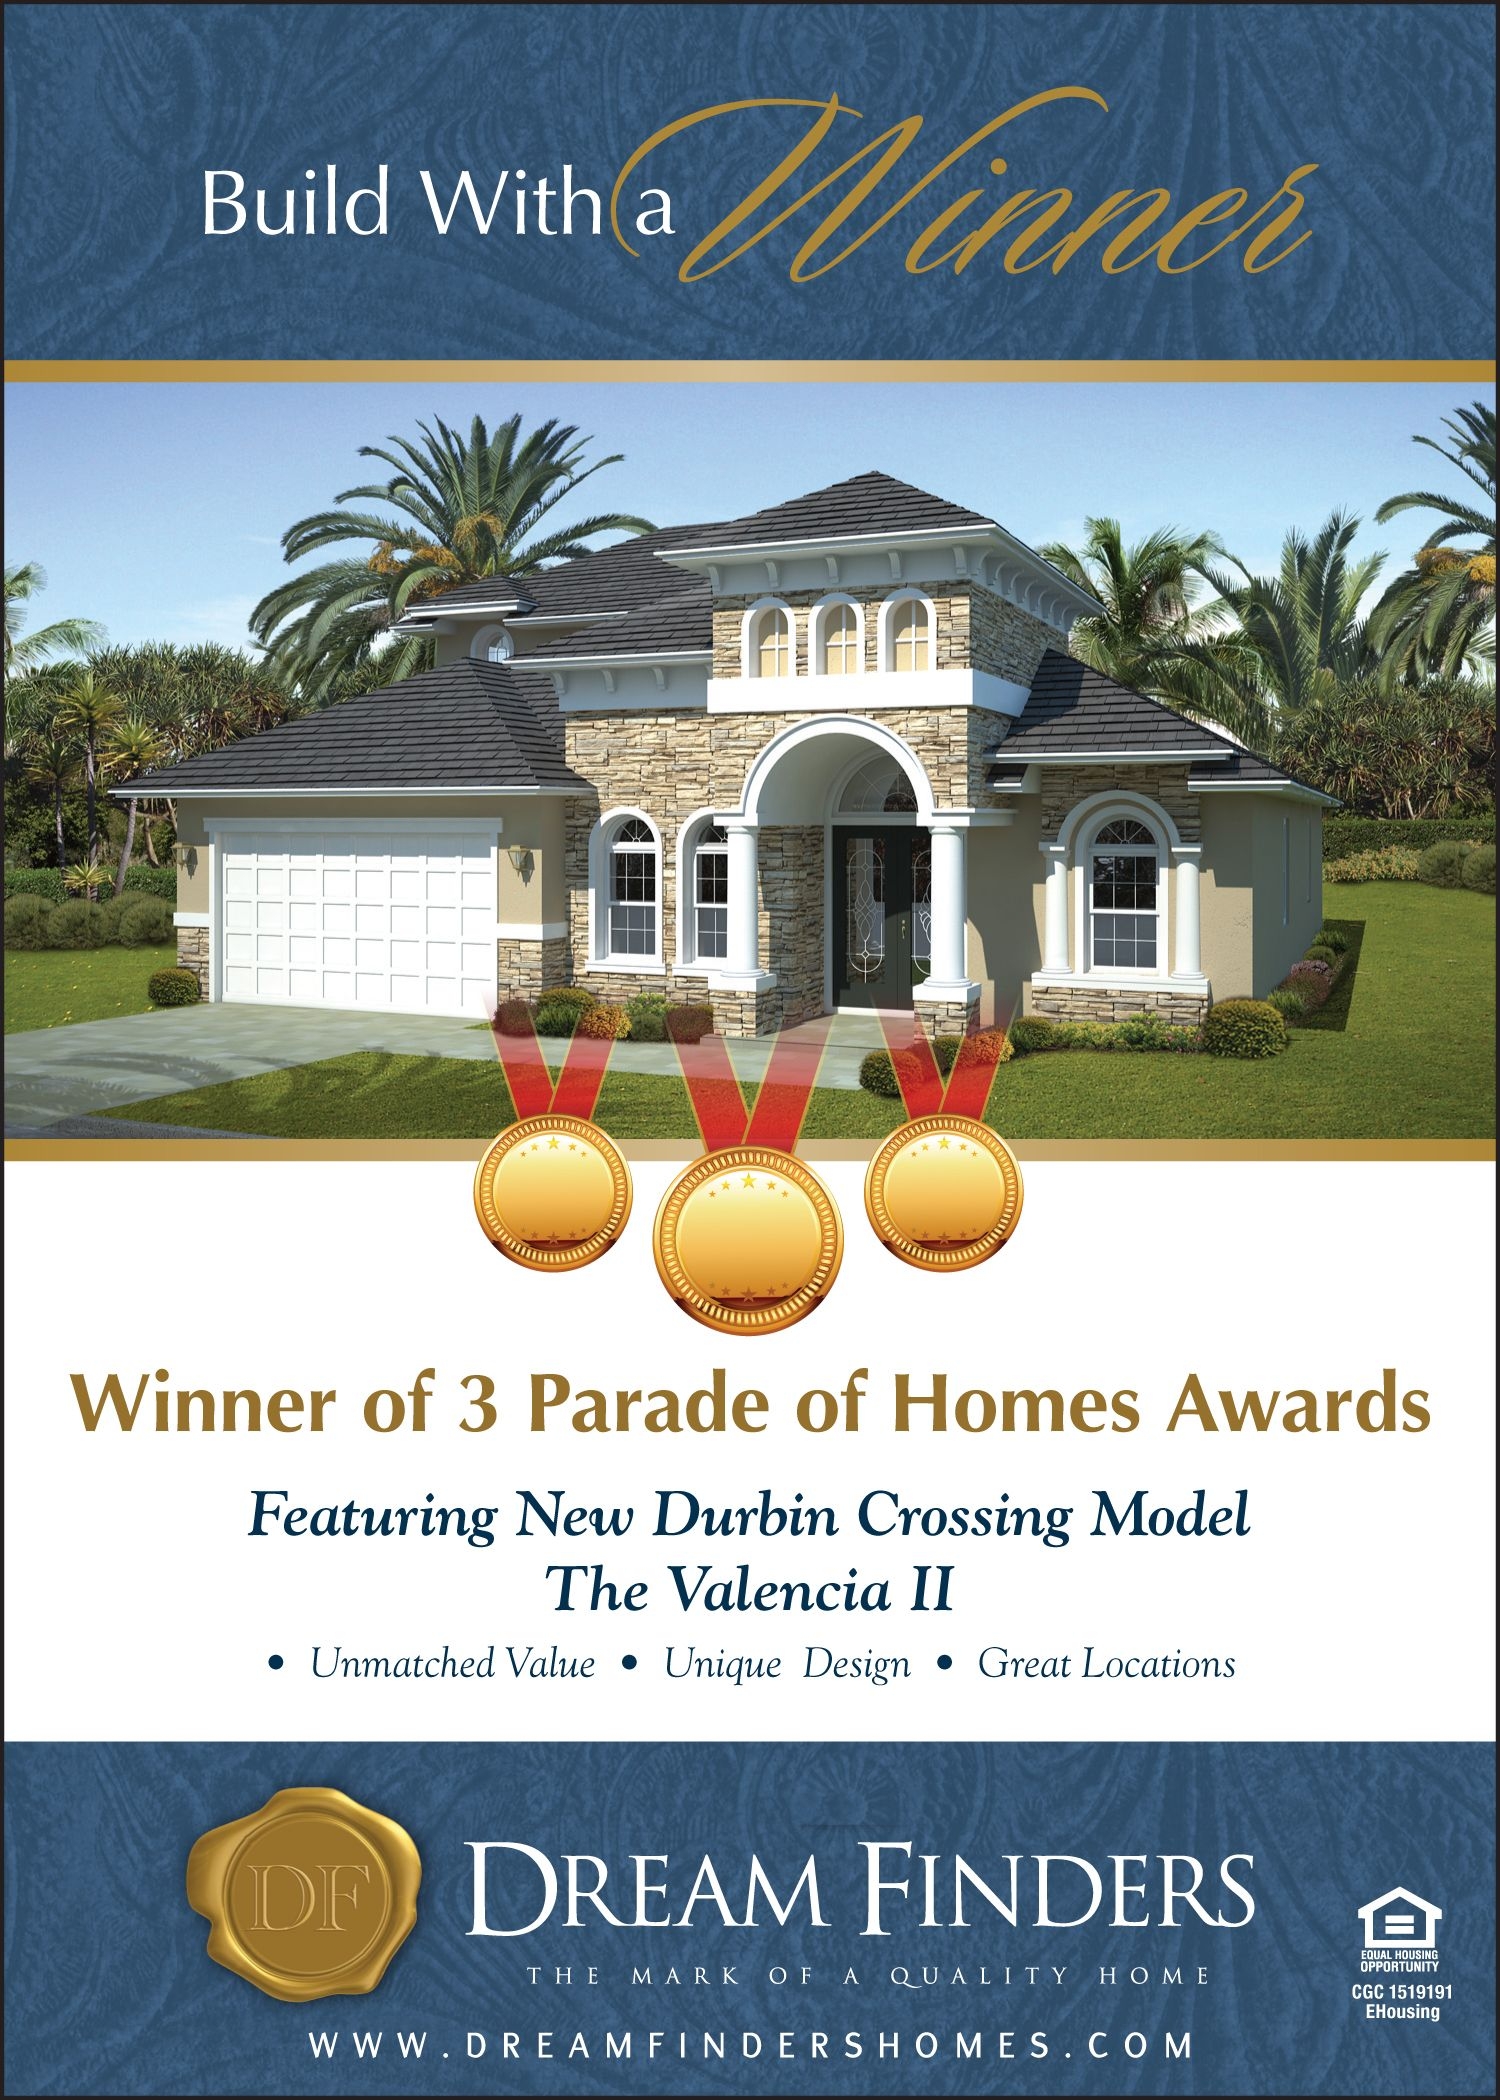 Homes For Sale Durbin Crossing Florida